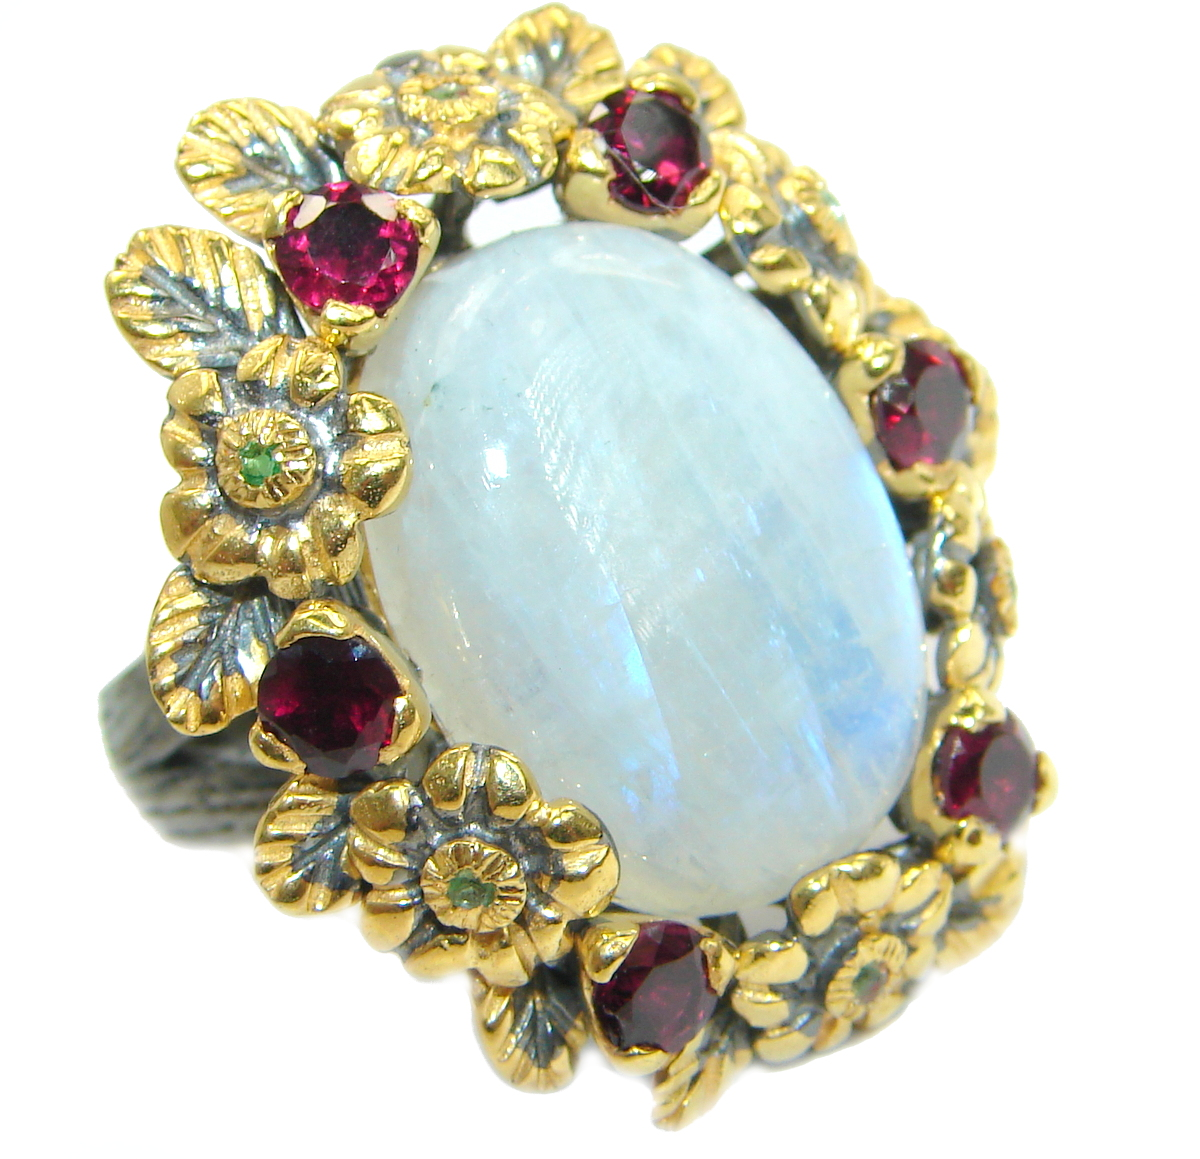 Huge Fire Moonstone Garnet 18K .925 Sterling Silver handcrafted ring size 7